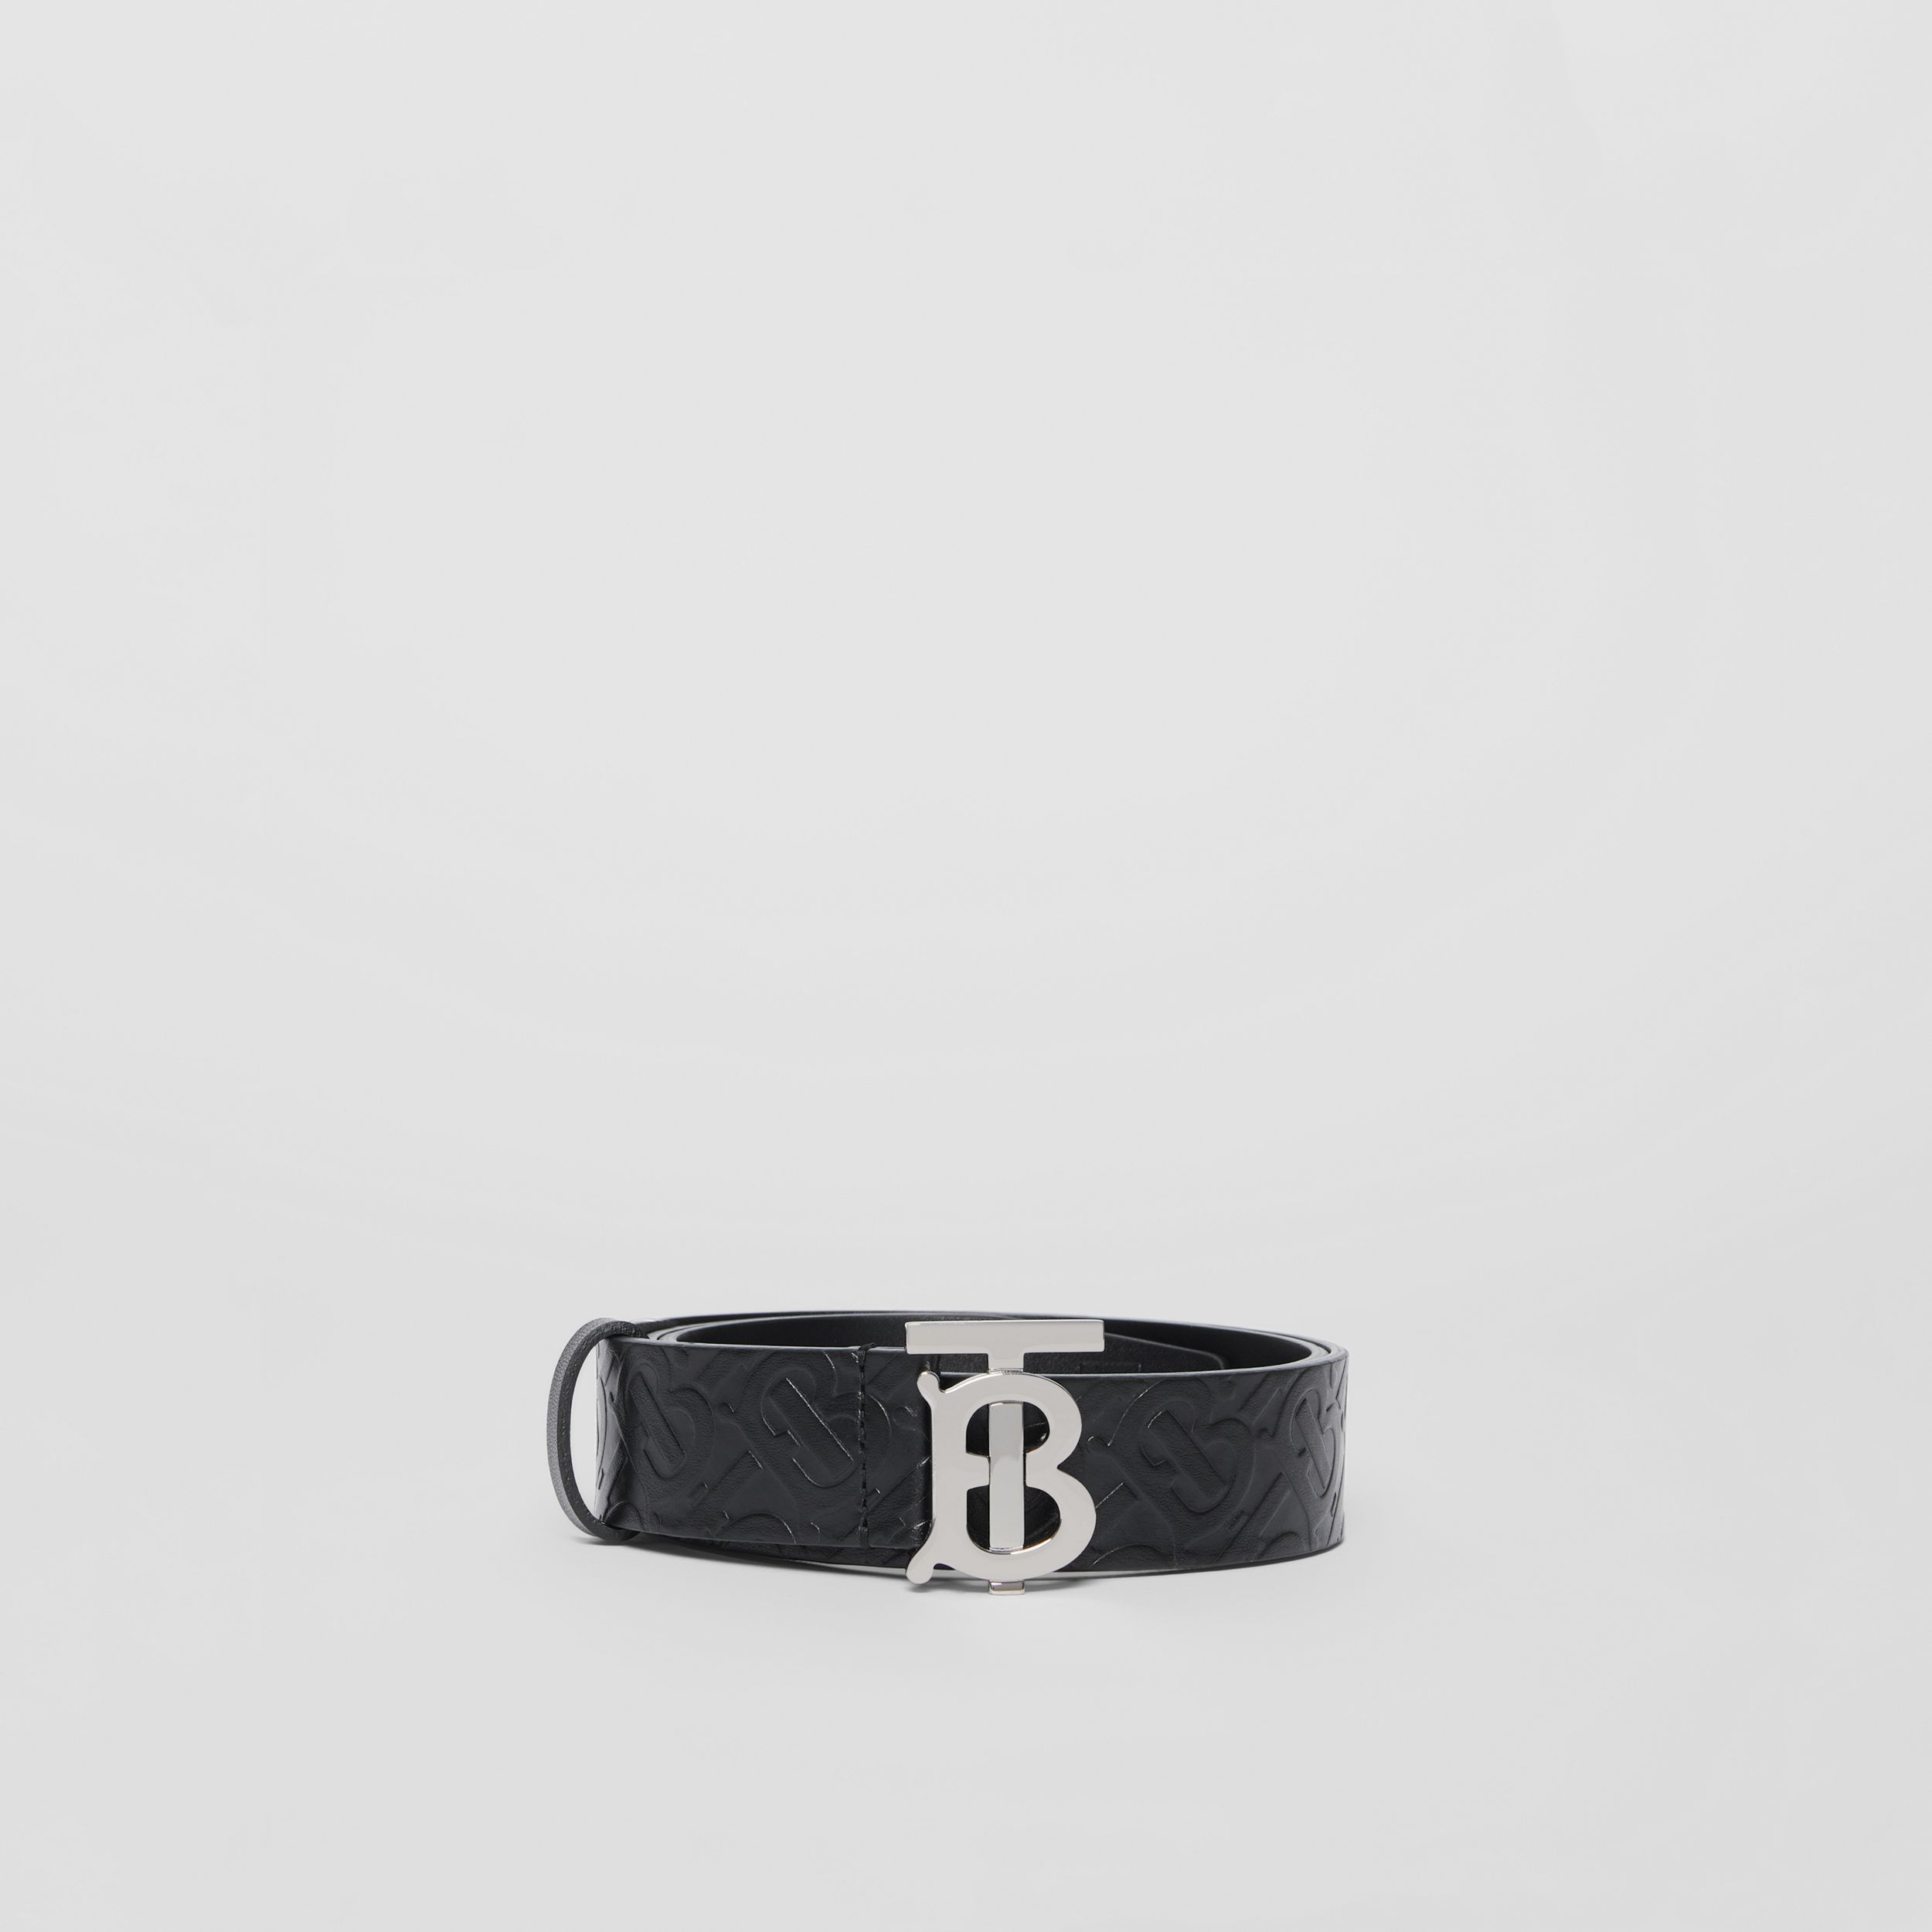 Monogram Motif Monogram Leather Belt in Black - Men | Burberry - 4